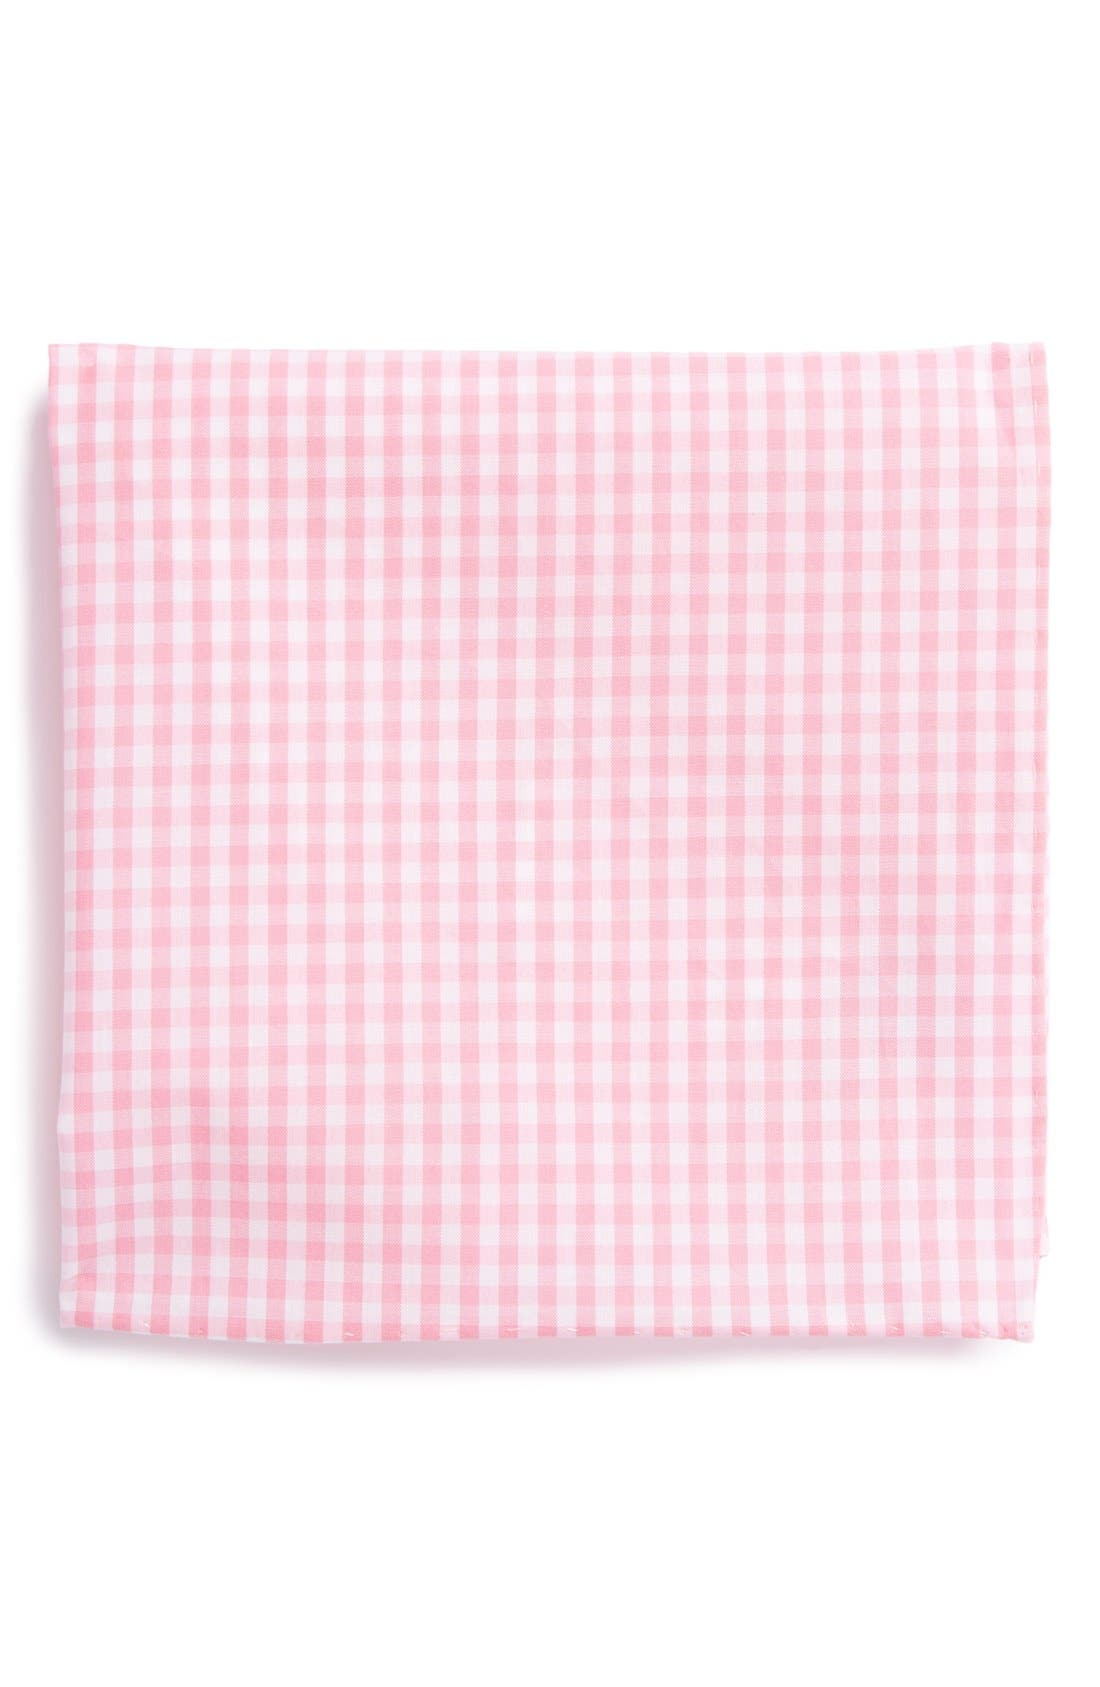 Alternate Image 1 Selected - The Tie Bar Cotton Gingham Pocket Square (Online Only)